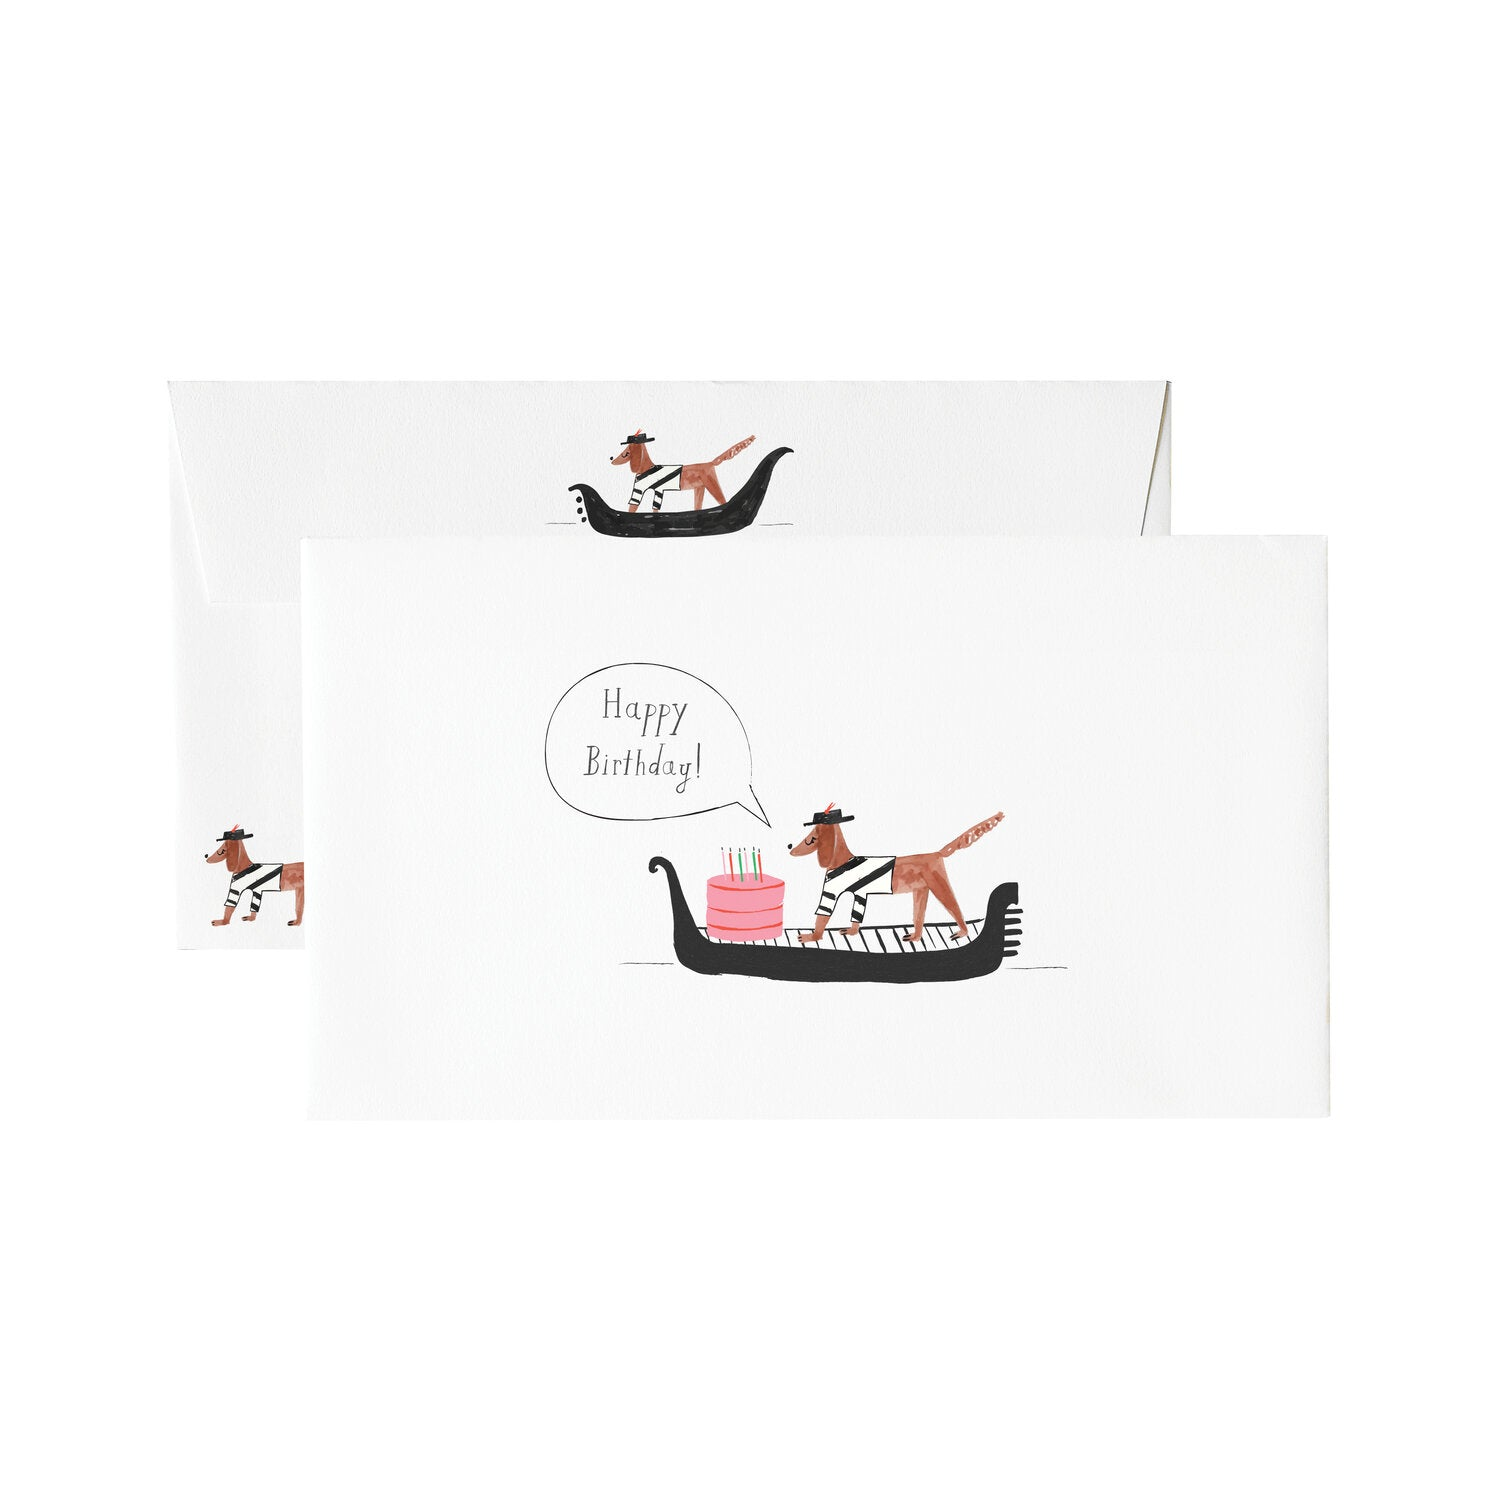 Mr. Boddingtons Studio :: Cake Delivery on the Canal Birthday, Greeting Card